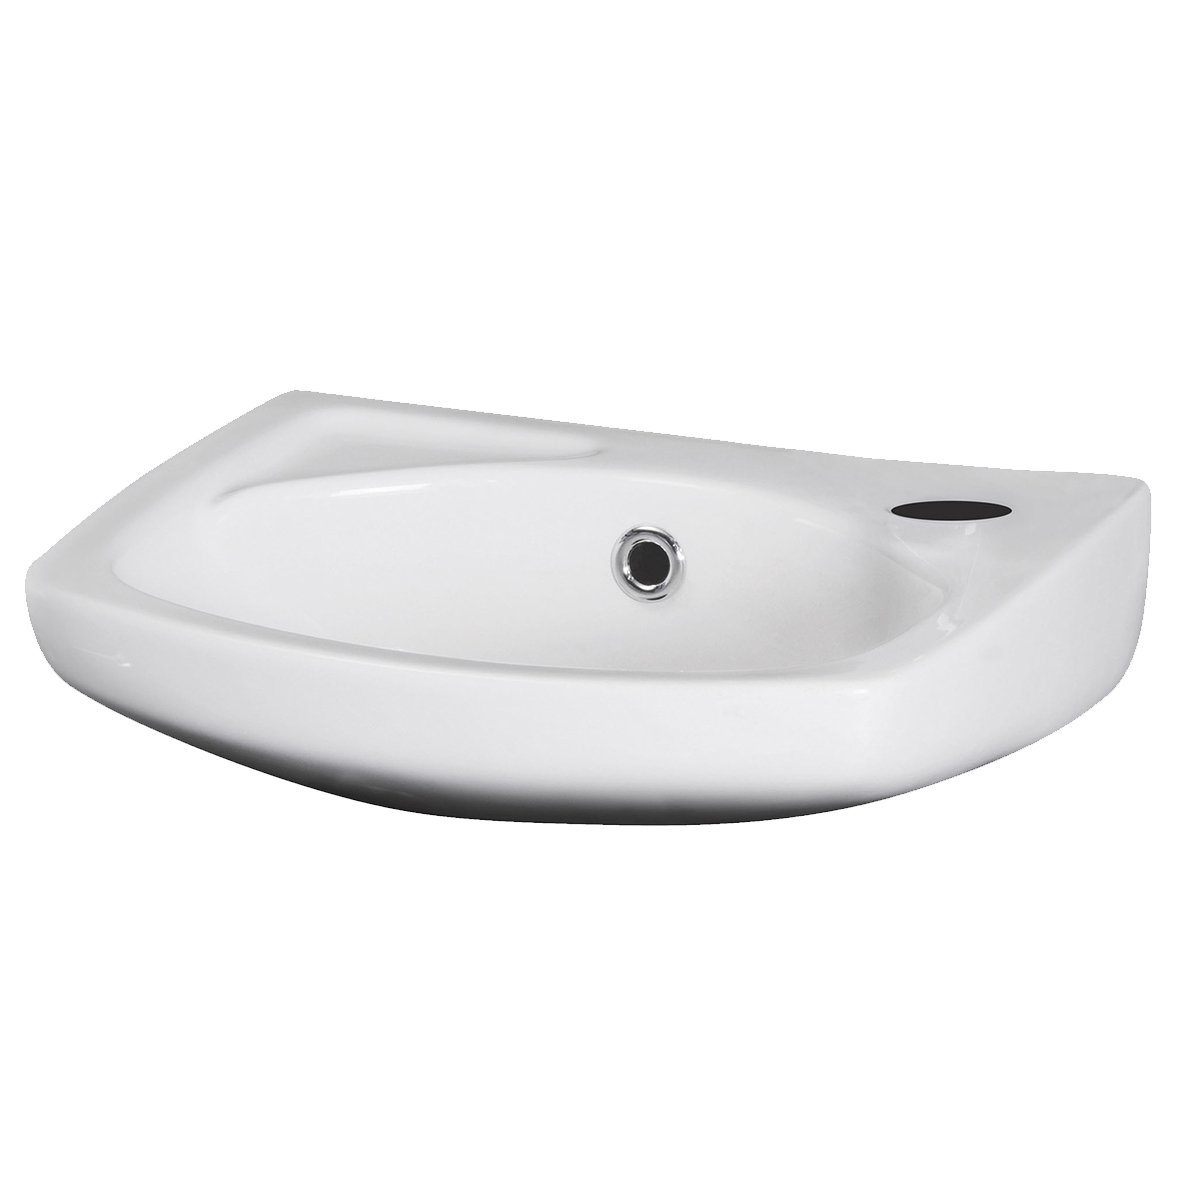 Premier Melbourne Wall Hung Cloakroom Basin 350mm Wide 1 Tap Hole